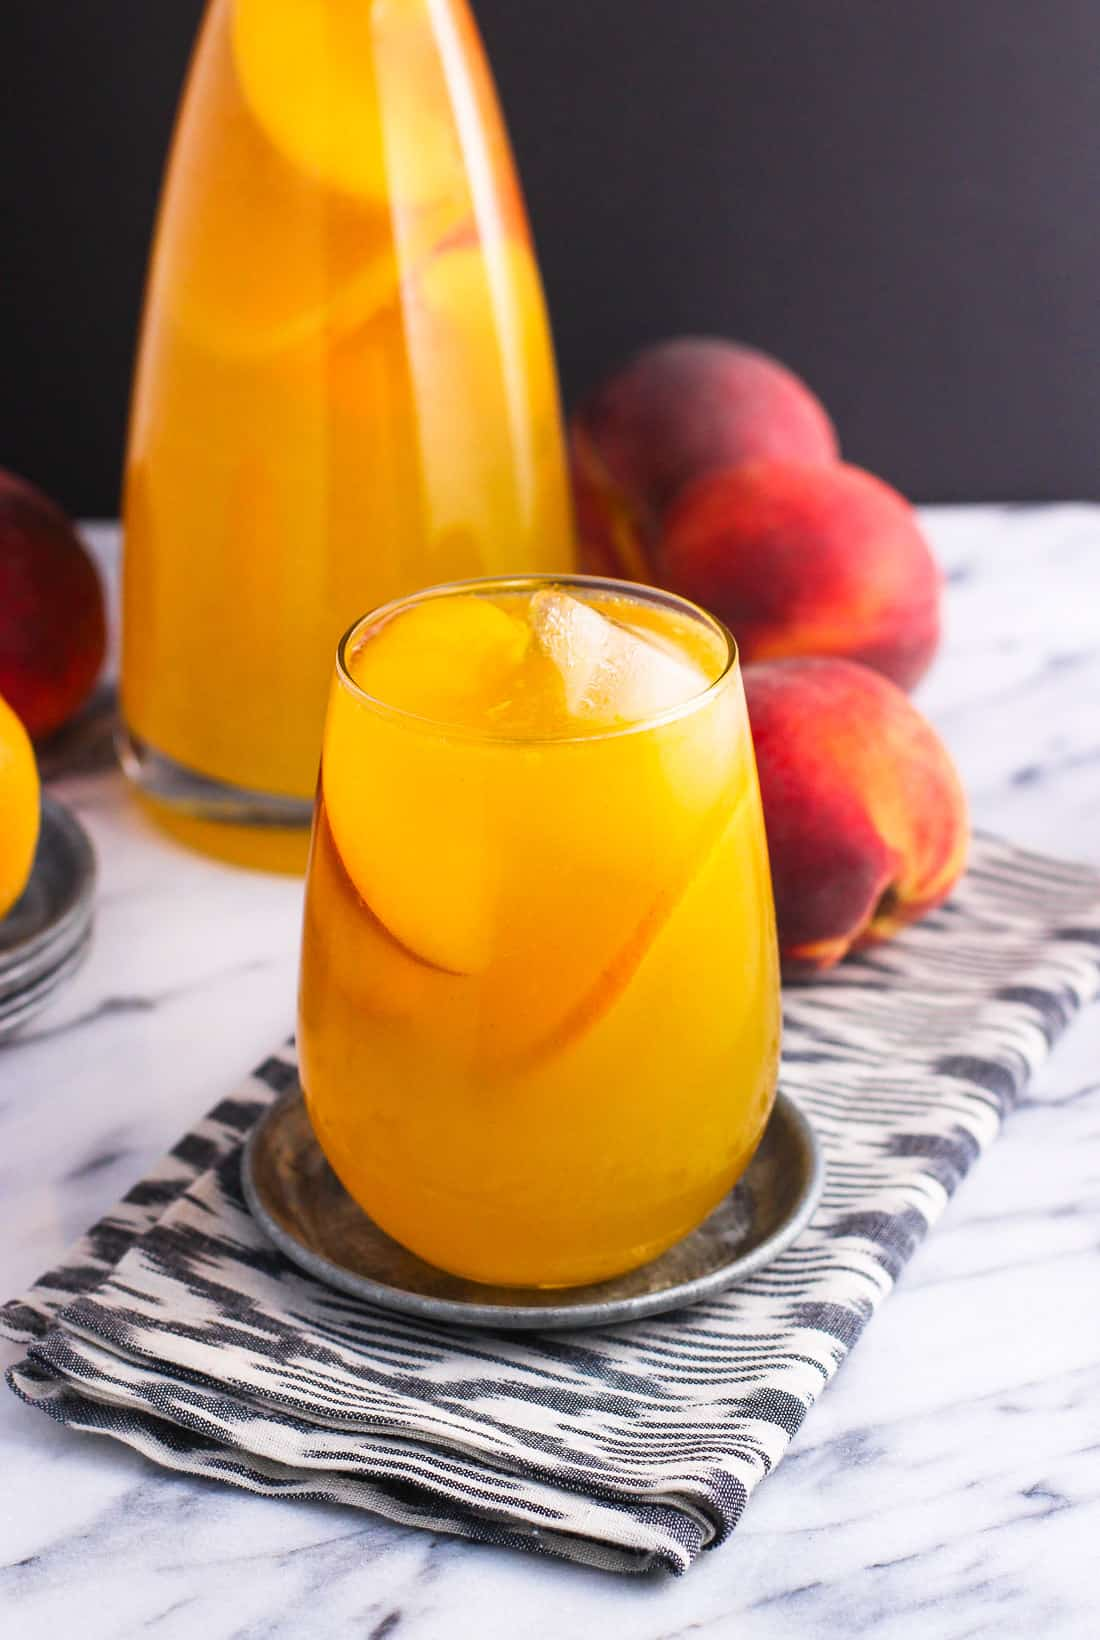 A glass of peach mango sangria garnished with ice cubes and peach slices in front of a carafe of sangria and peaches